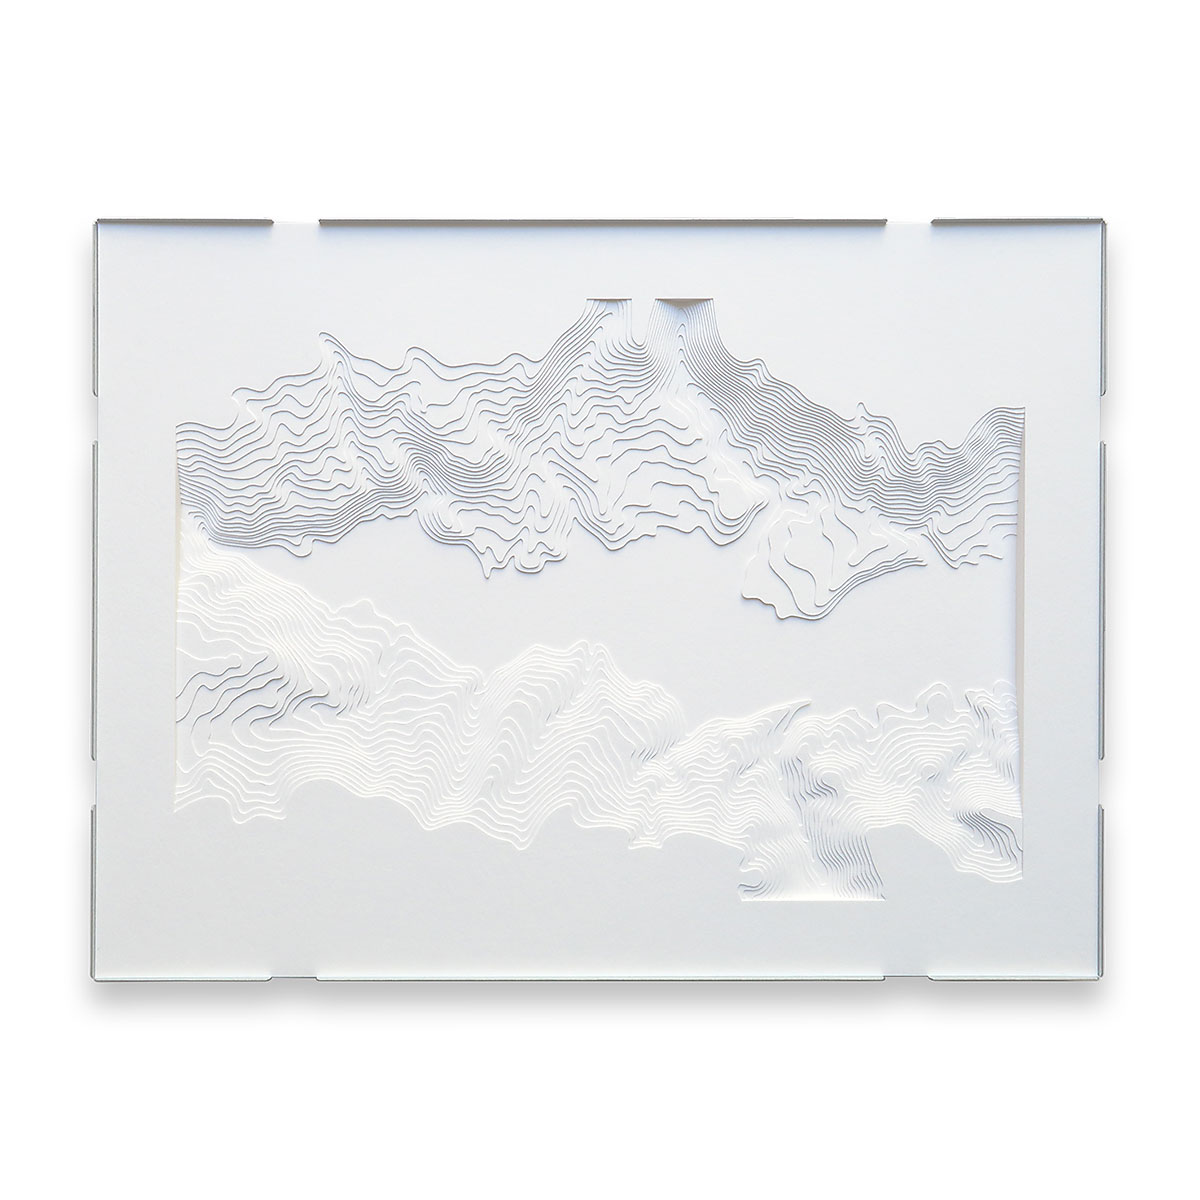 Topographic sculpture from layered paper by Stefanie Herr